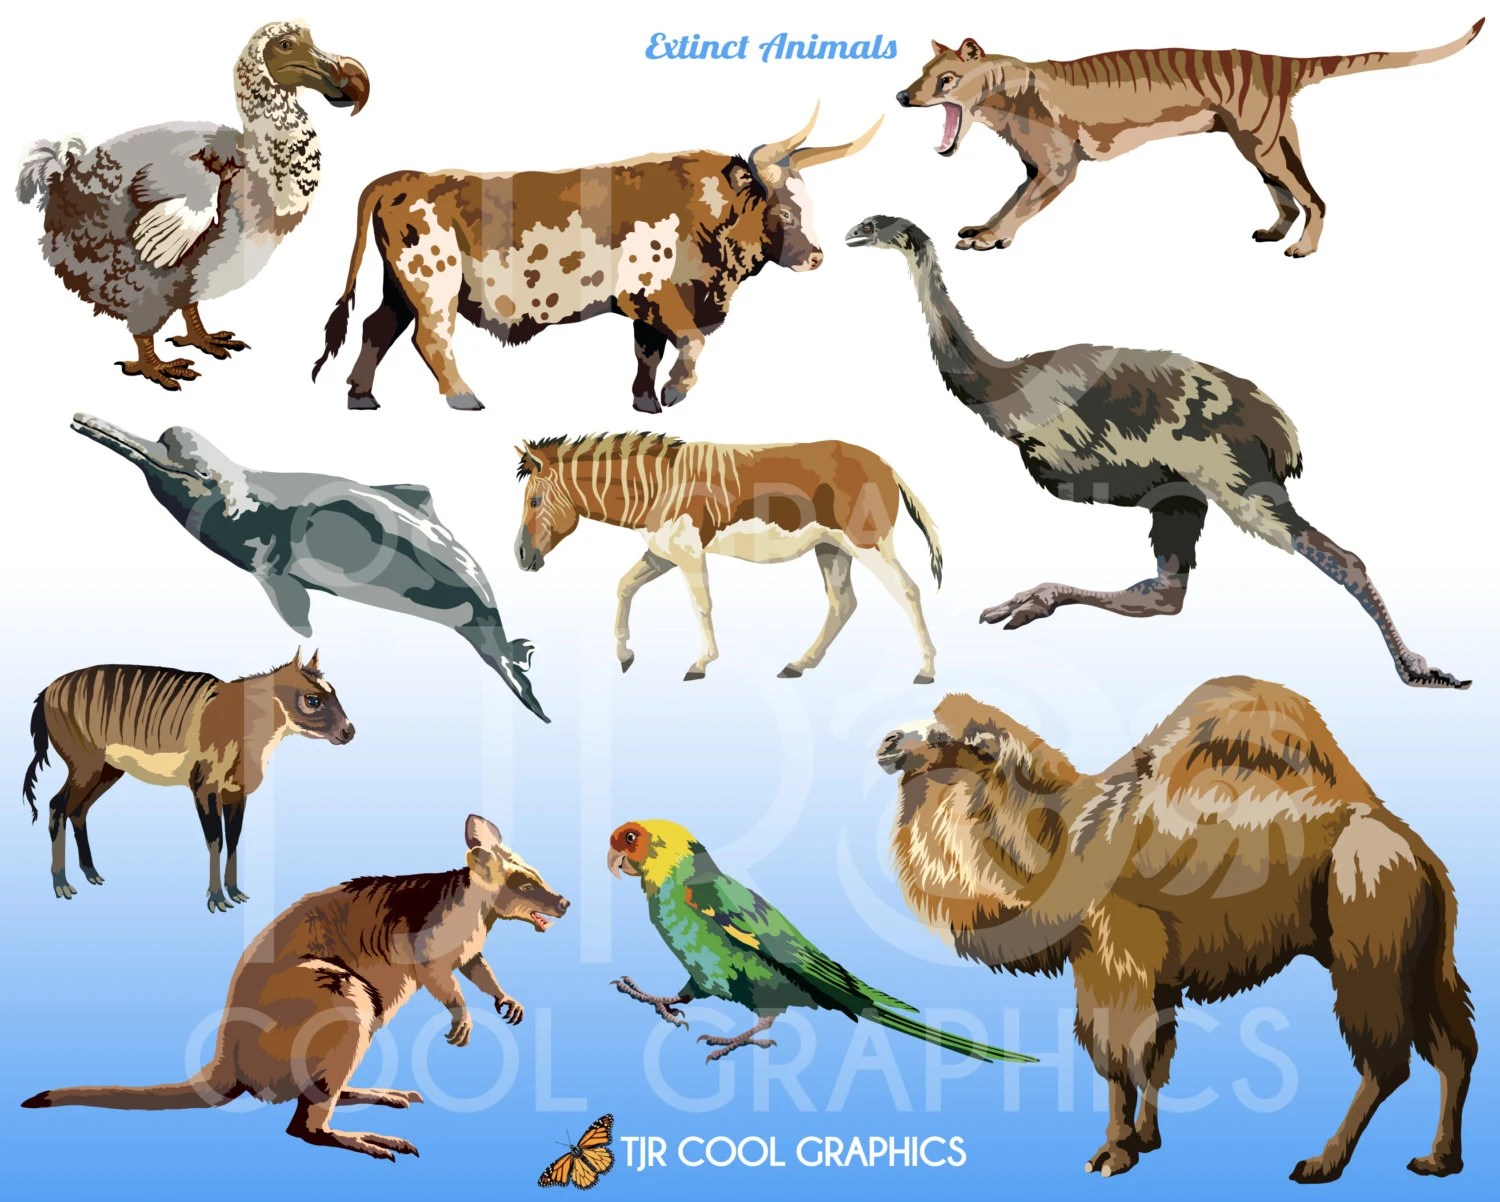 Extinct Animals Digital Realistic Clip Art Commercial PNG   Etsy image 0